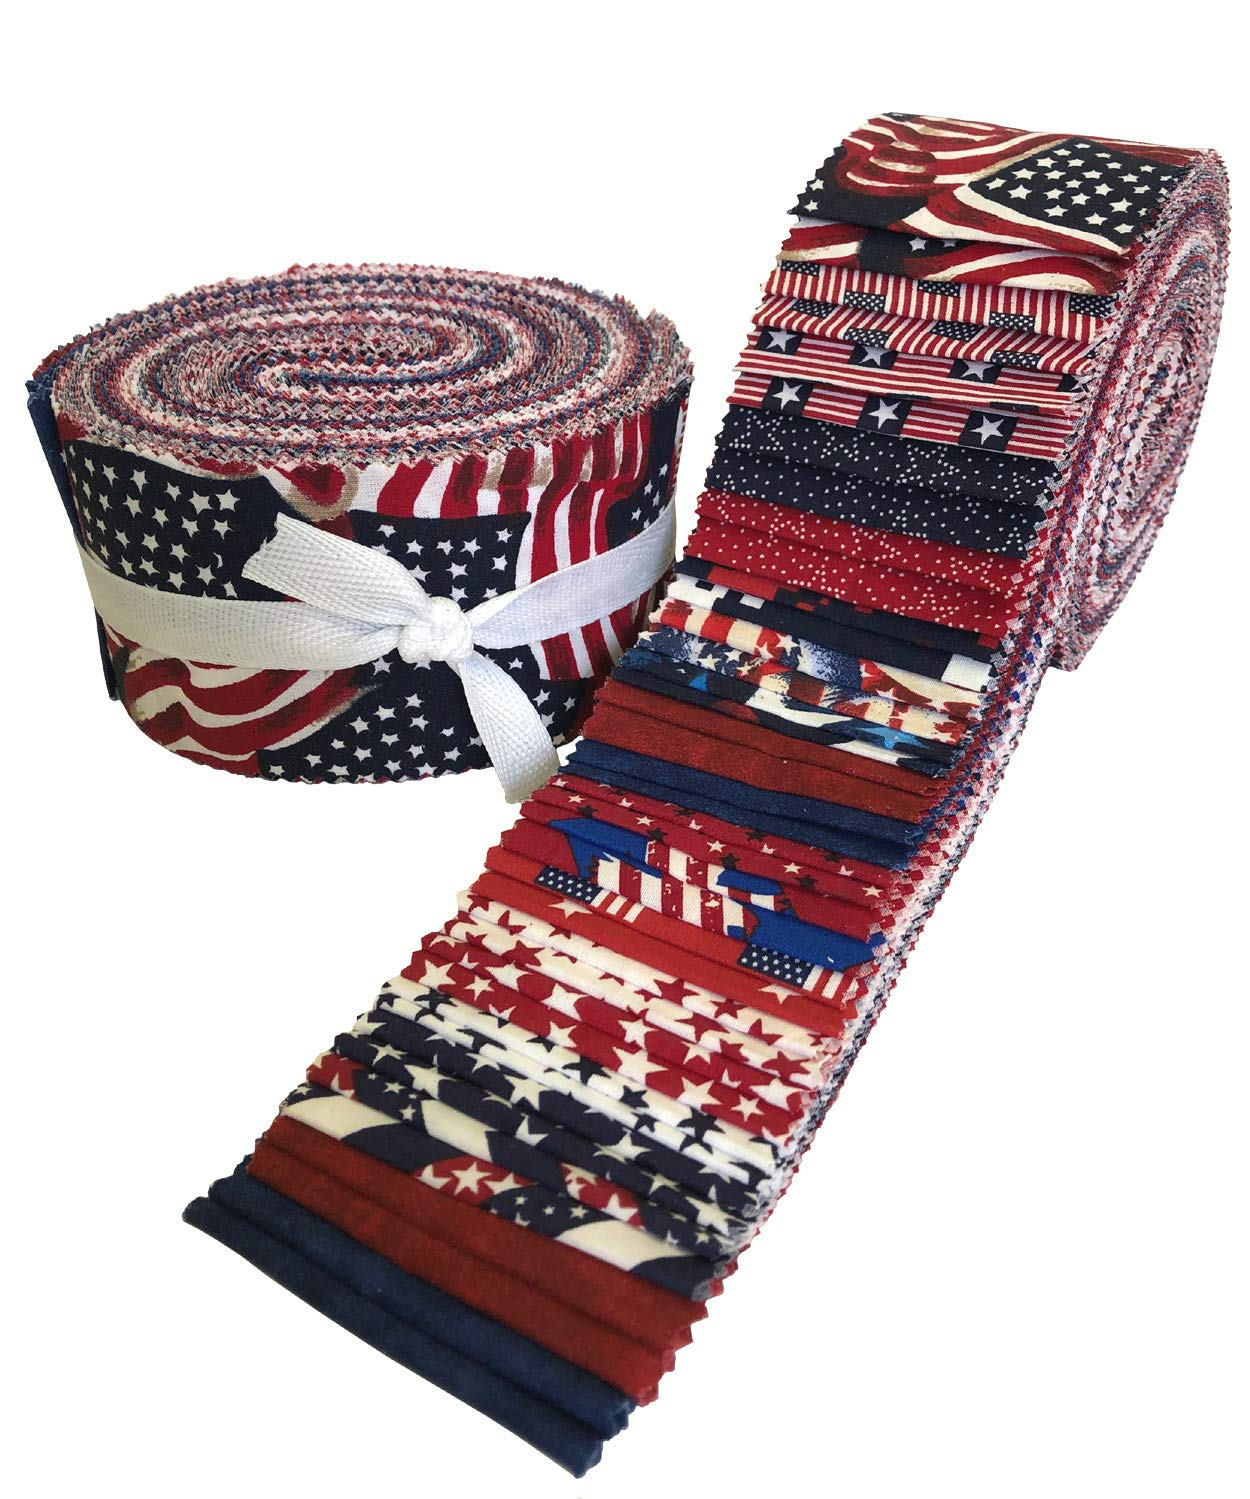 Made in USA Jelly Roll Collection 40 Precut 2.5-inch Quilting Fabric Strips by Santee